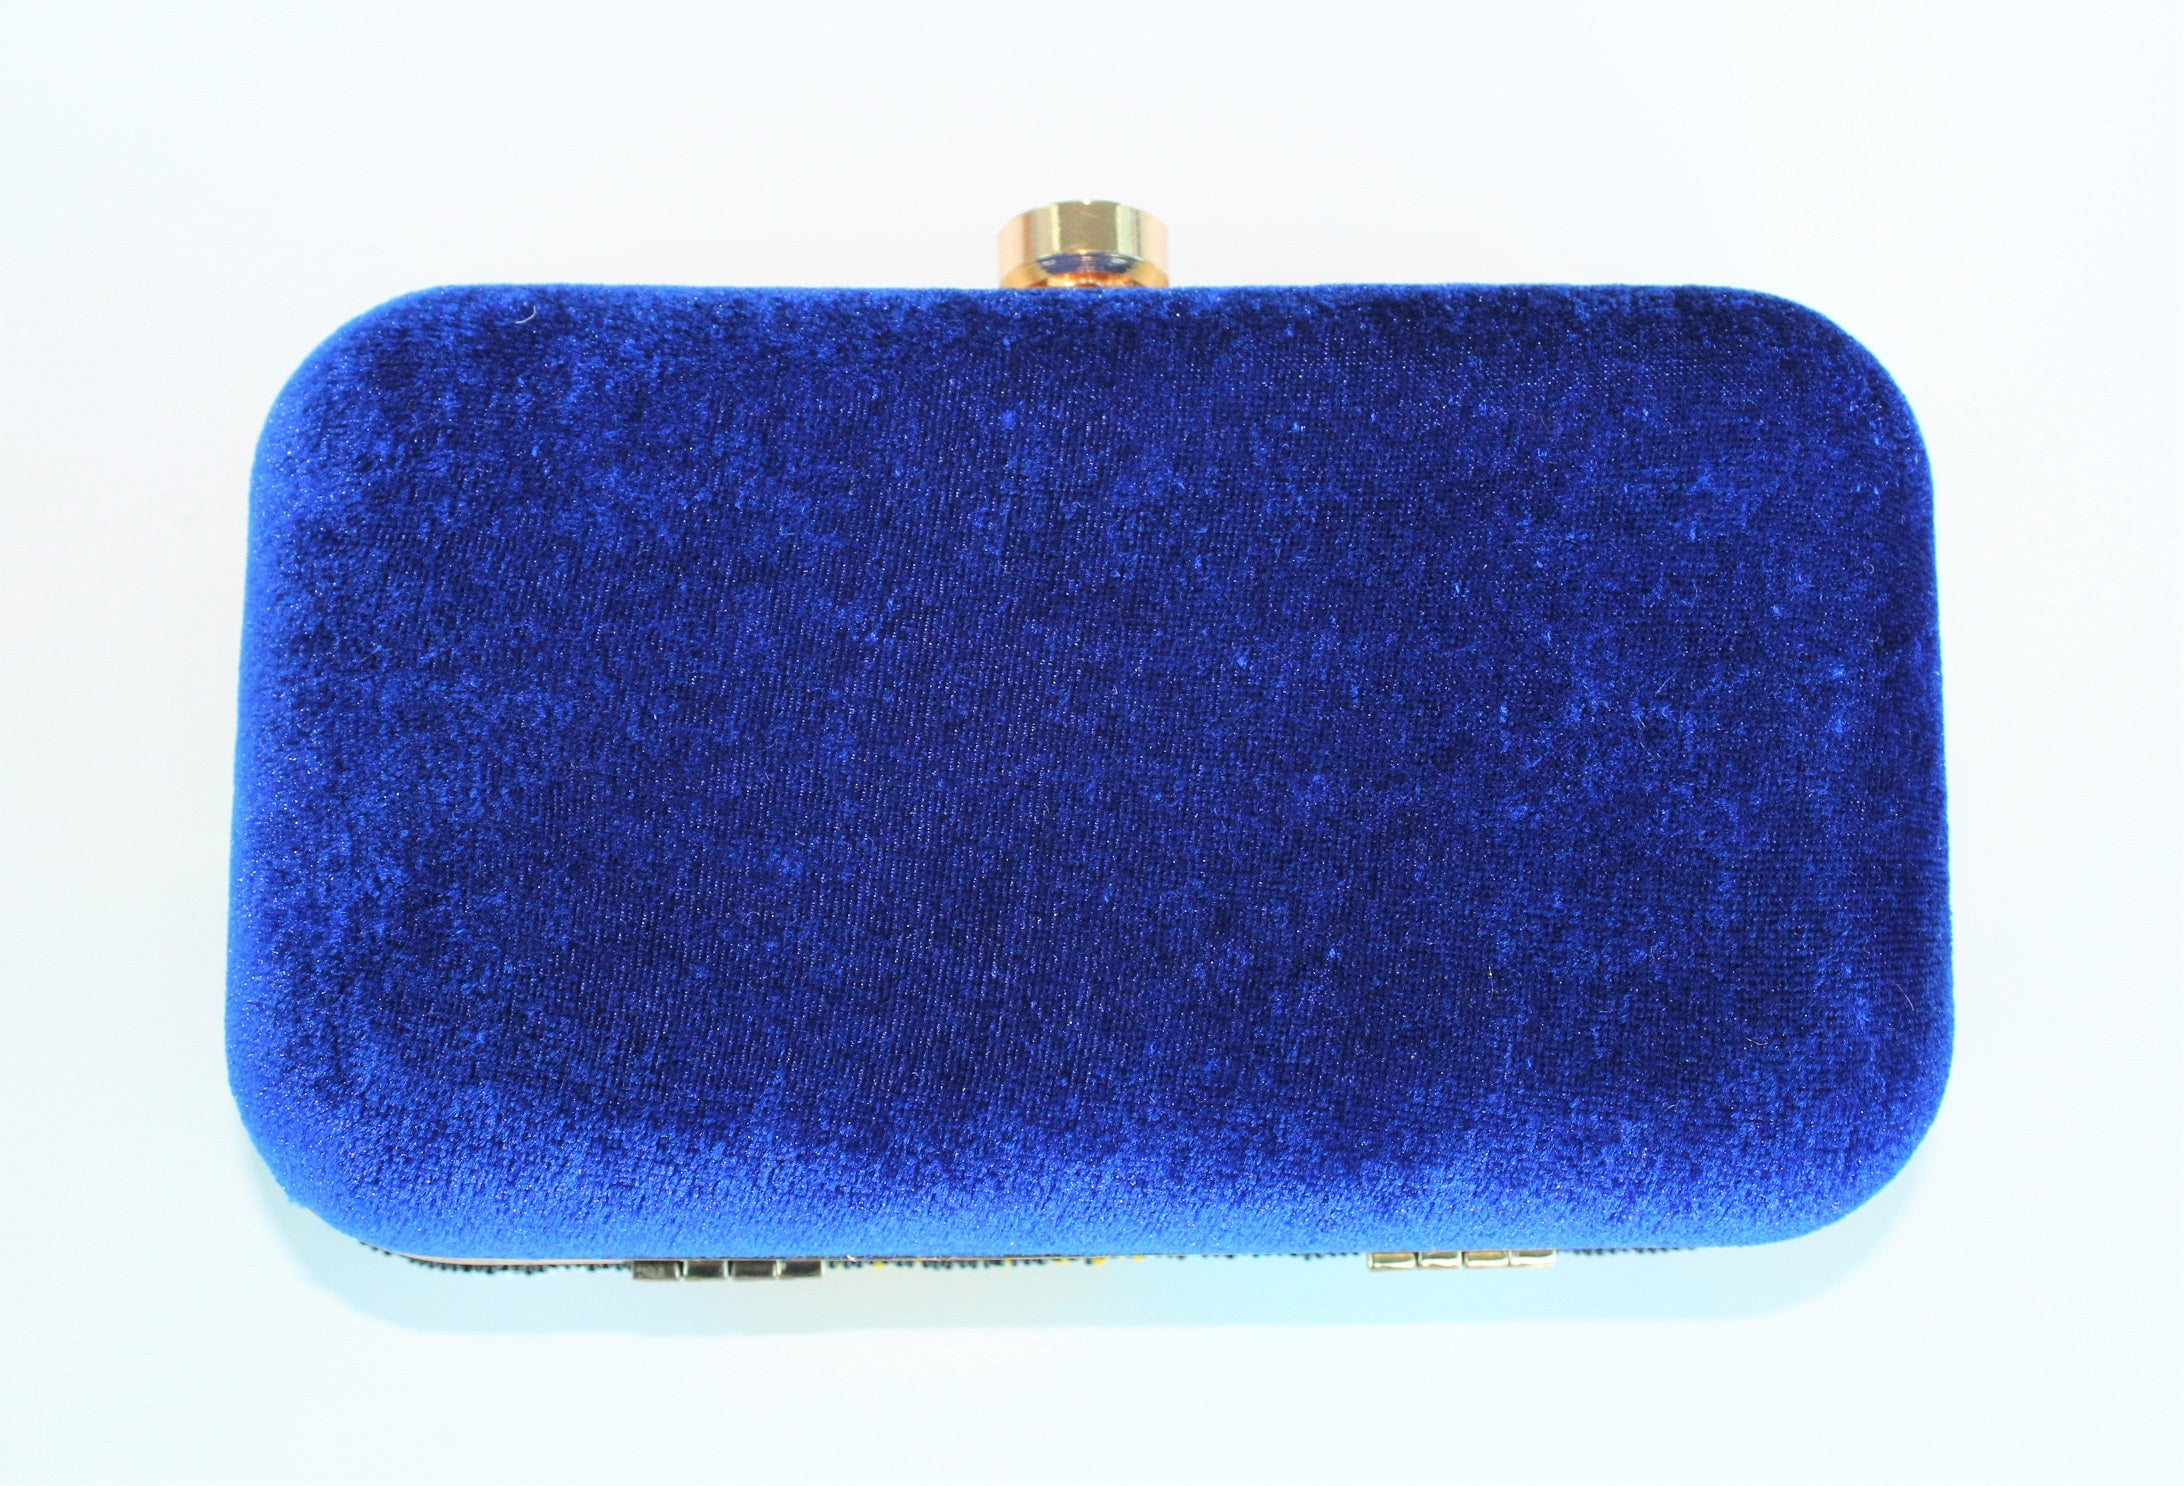 The Femme Clutch